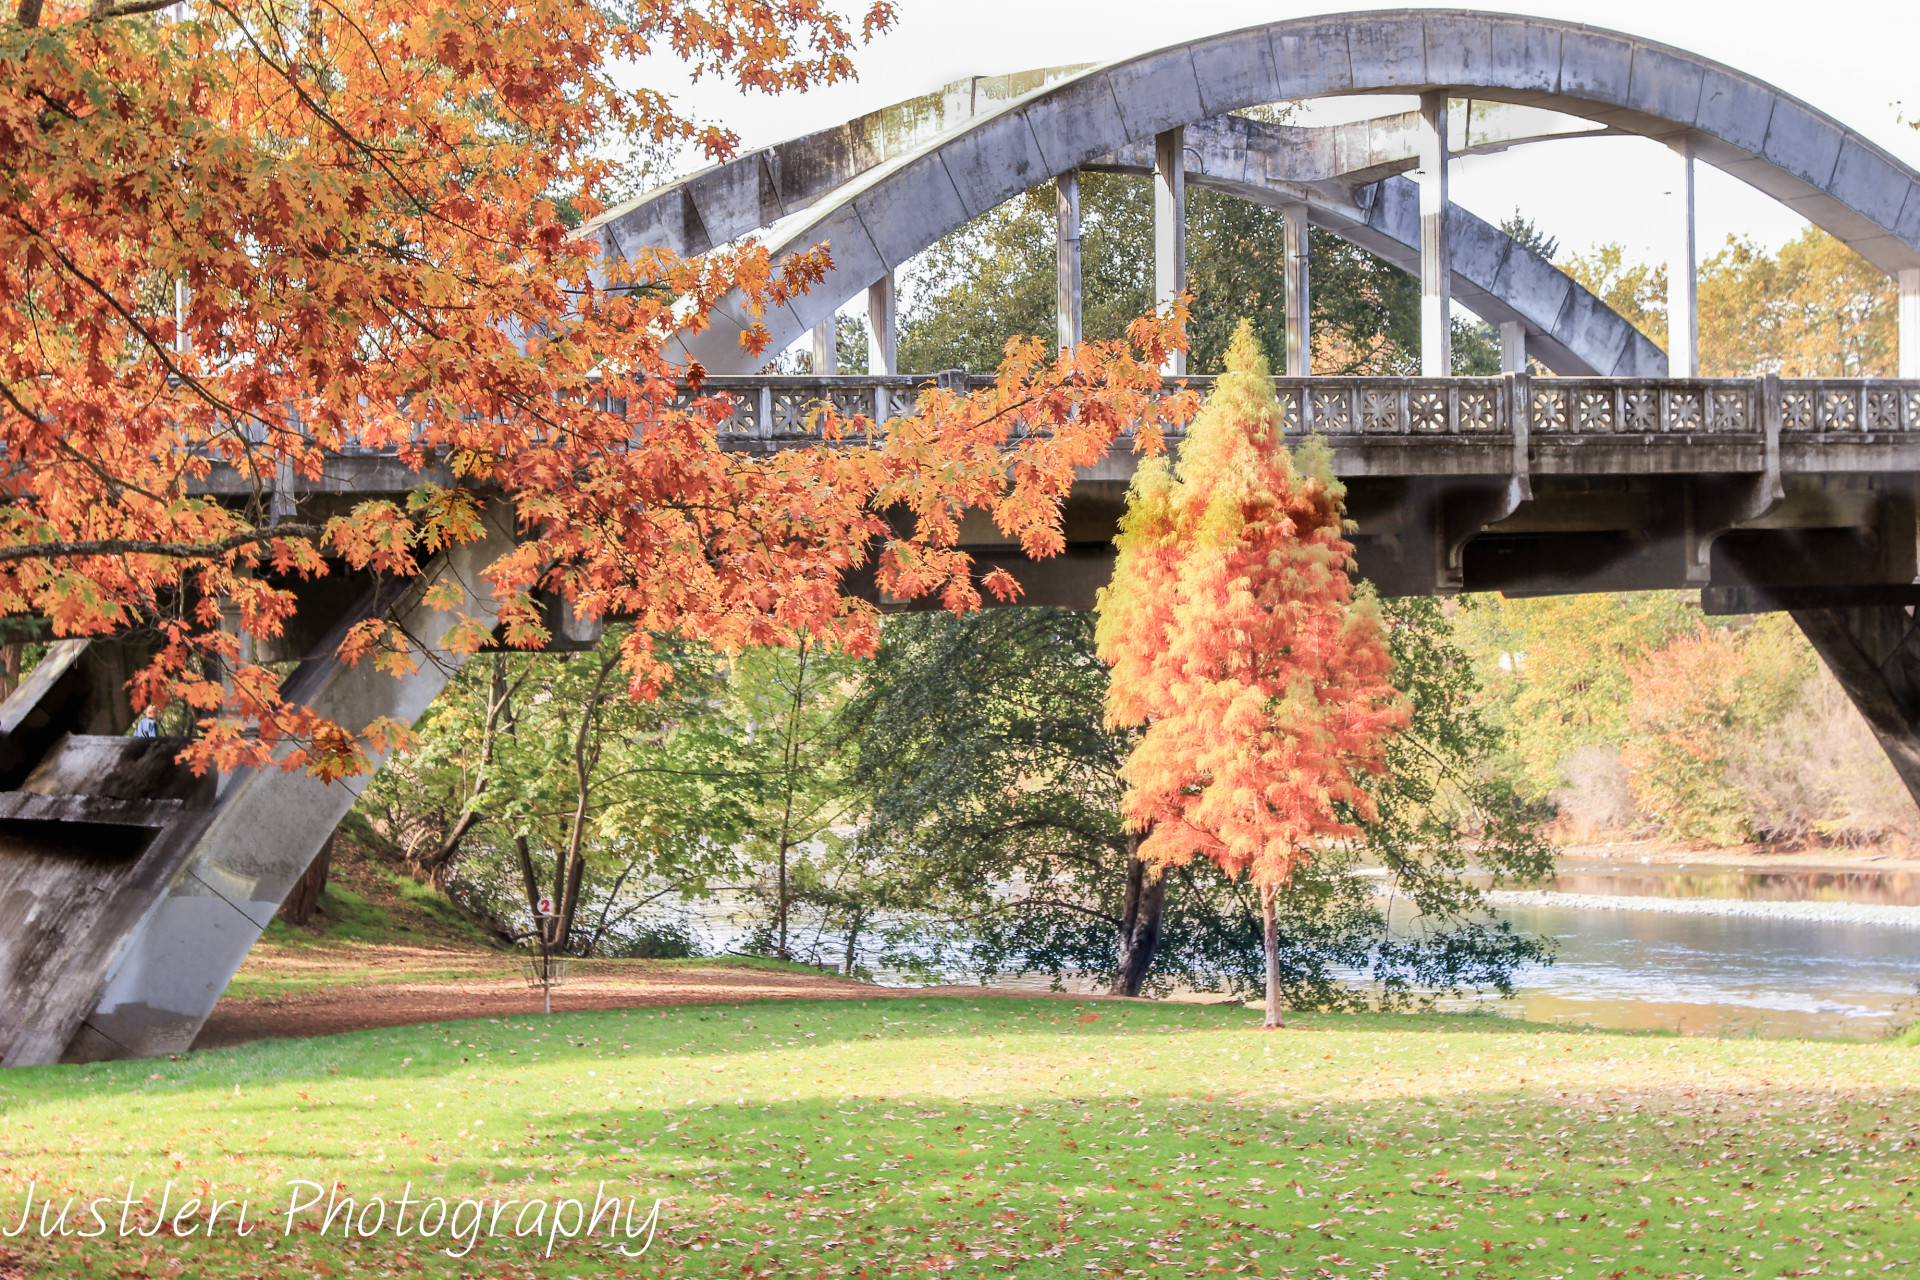 Just_Jeri_Bridge-in-the-fall-w1920.jpg